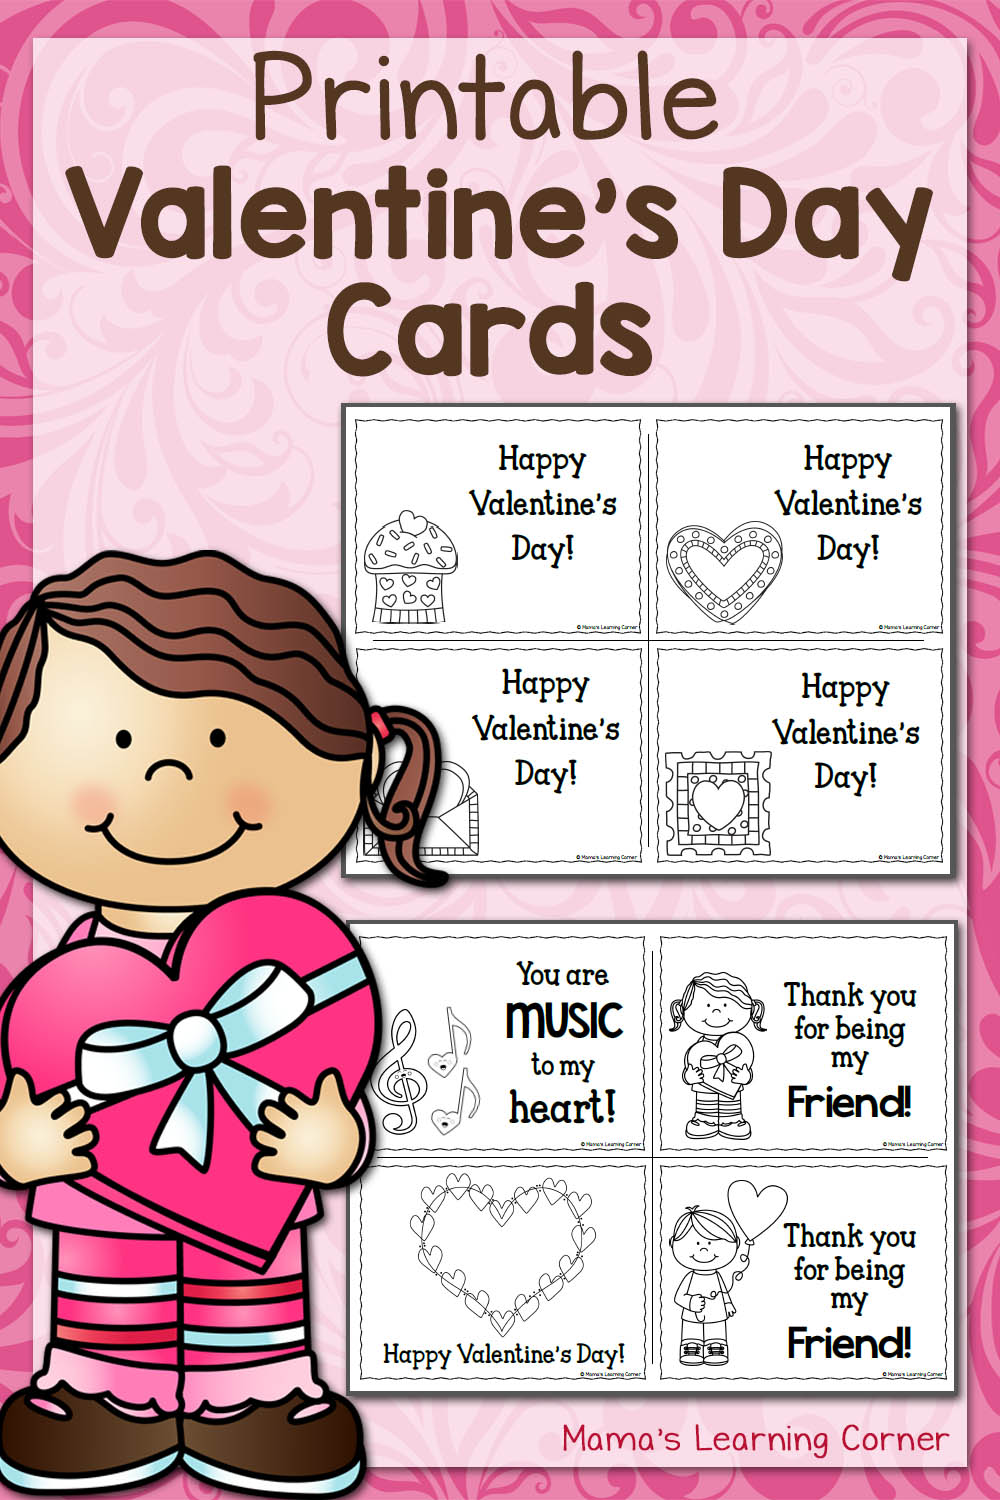 hight resolution of Printable Valentine's Day Cards - Mamas Learning Corner